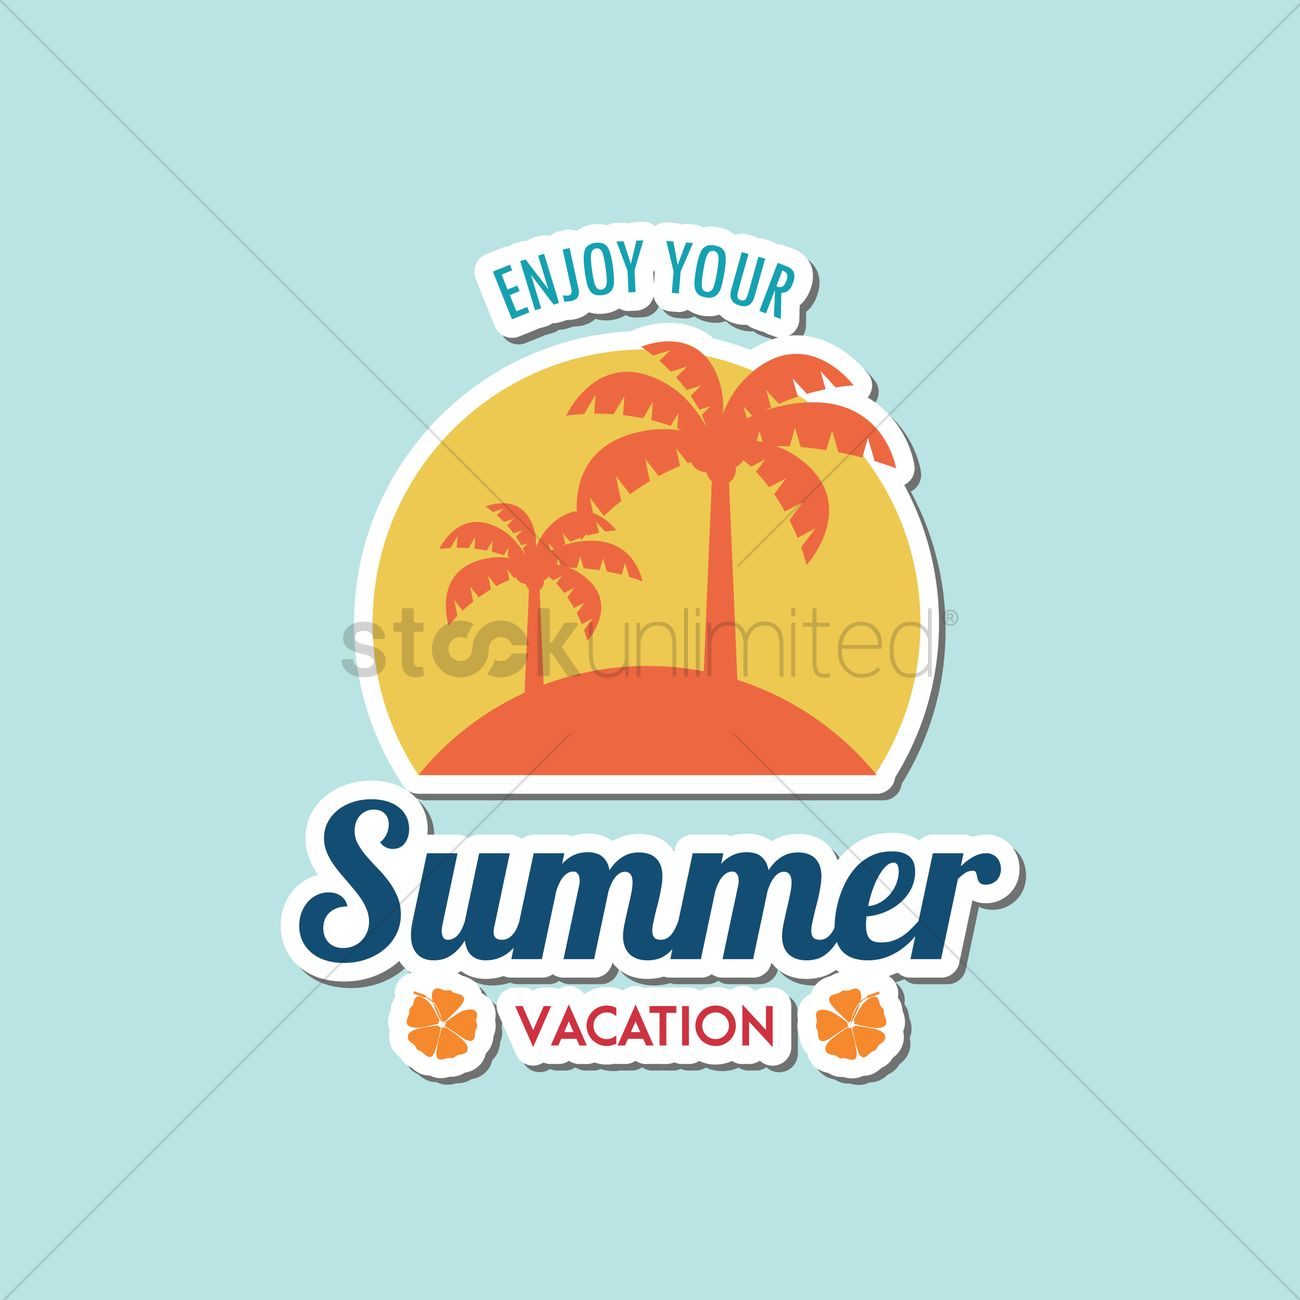 Enjoy Your Summer Vacation Vector Graphic